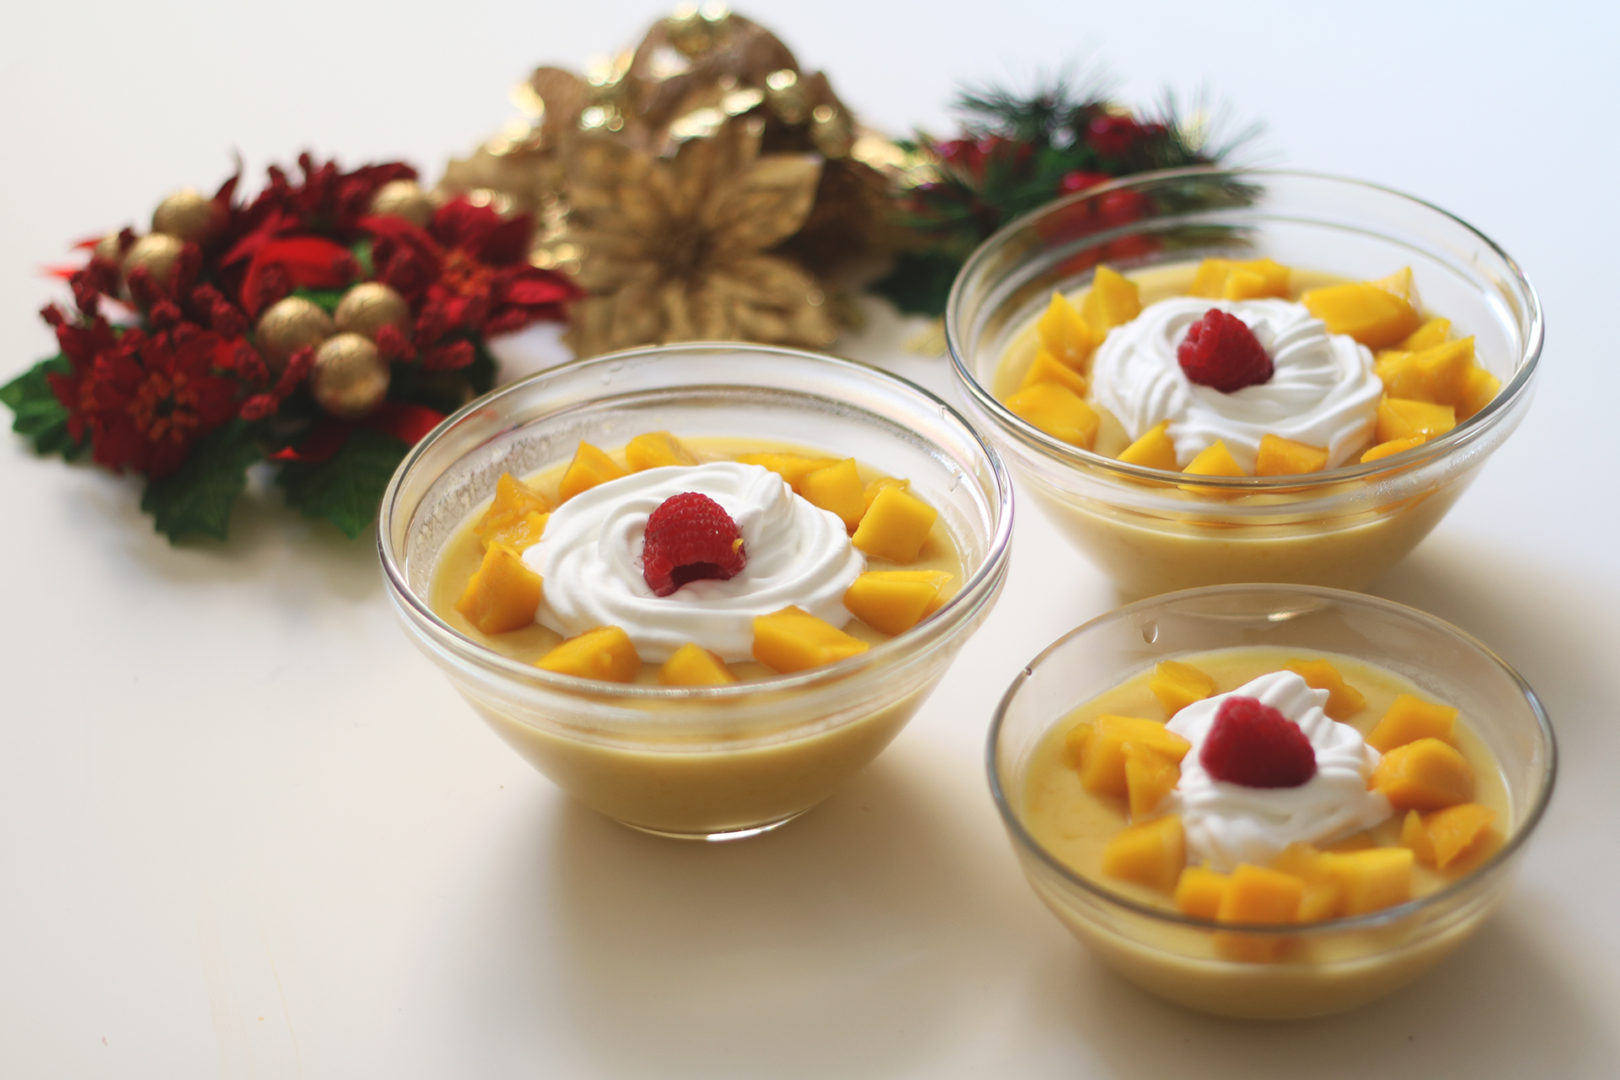 Mango Pudding Dessert Recipe The Indian Claypot